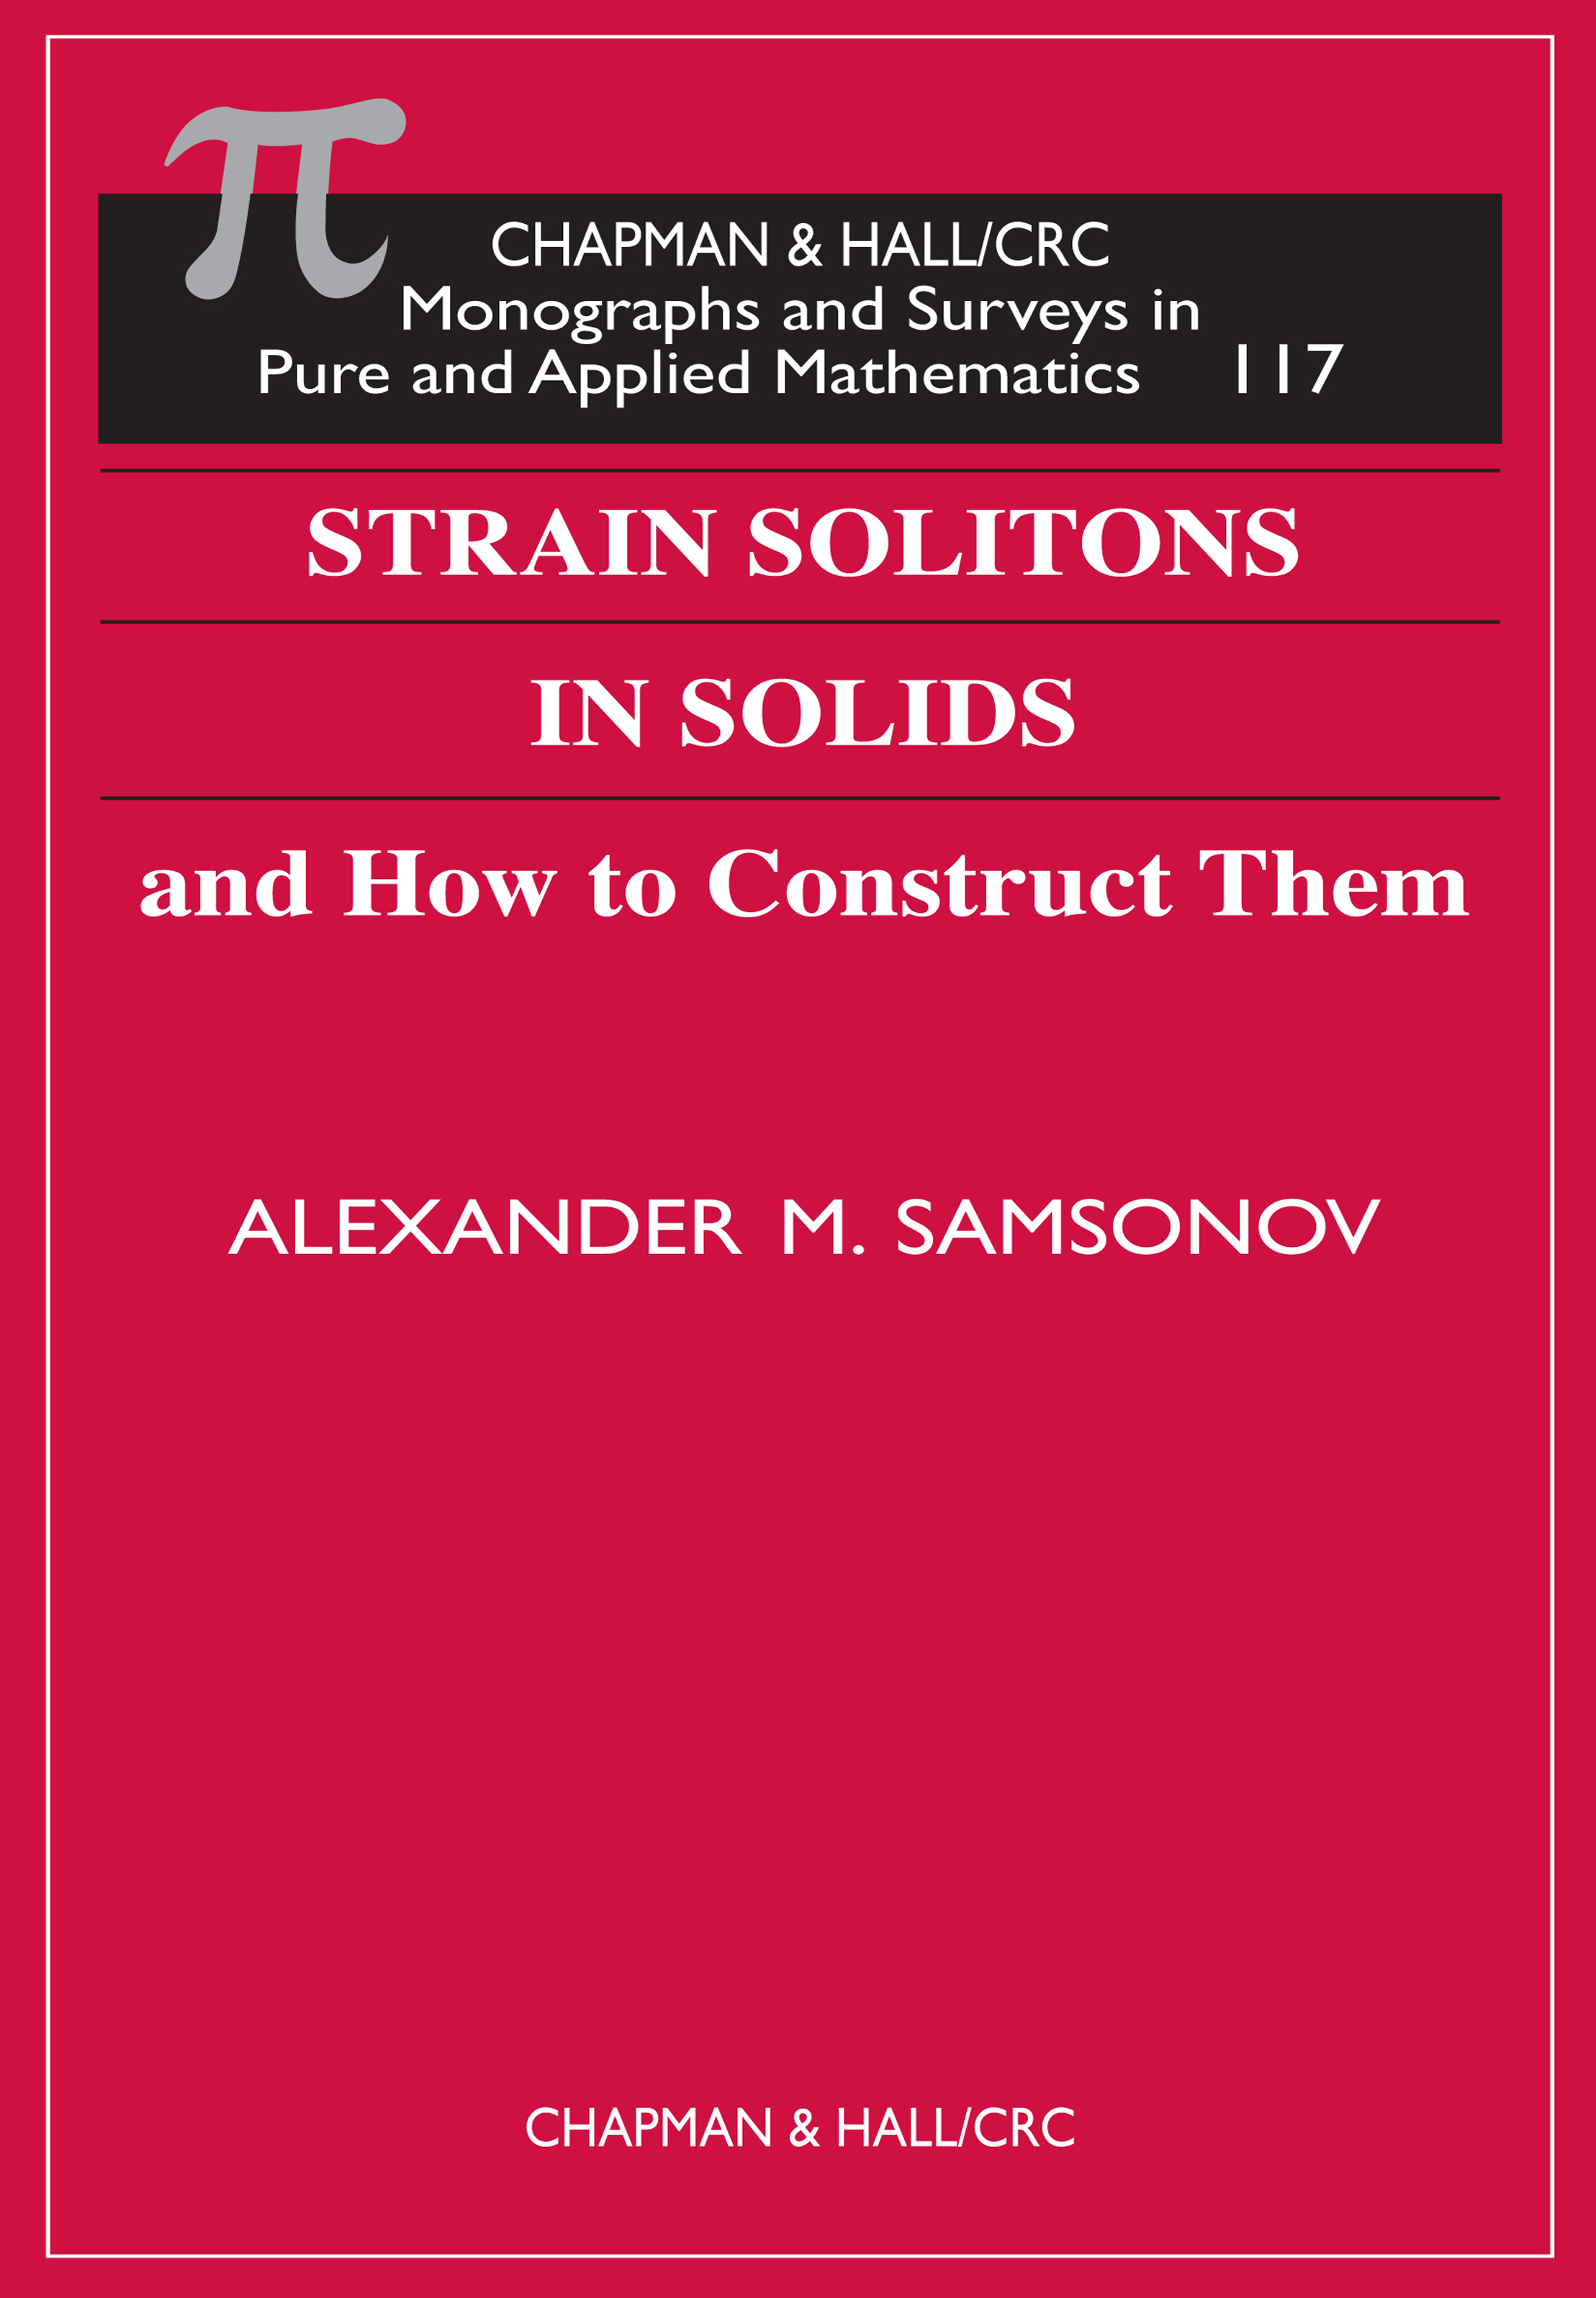 Strain Solitons in Solids; How to Construct Them